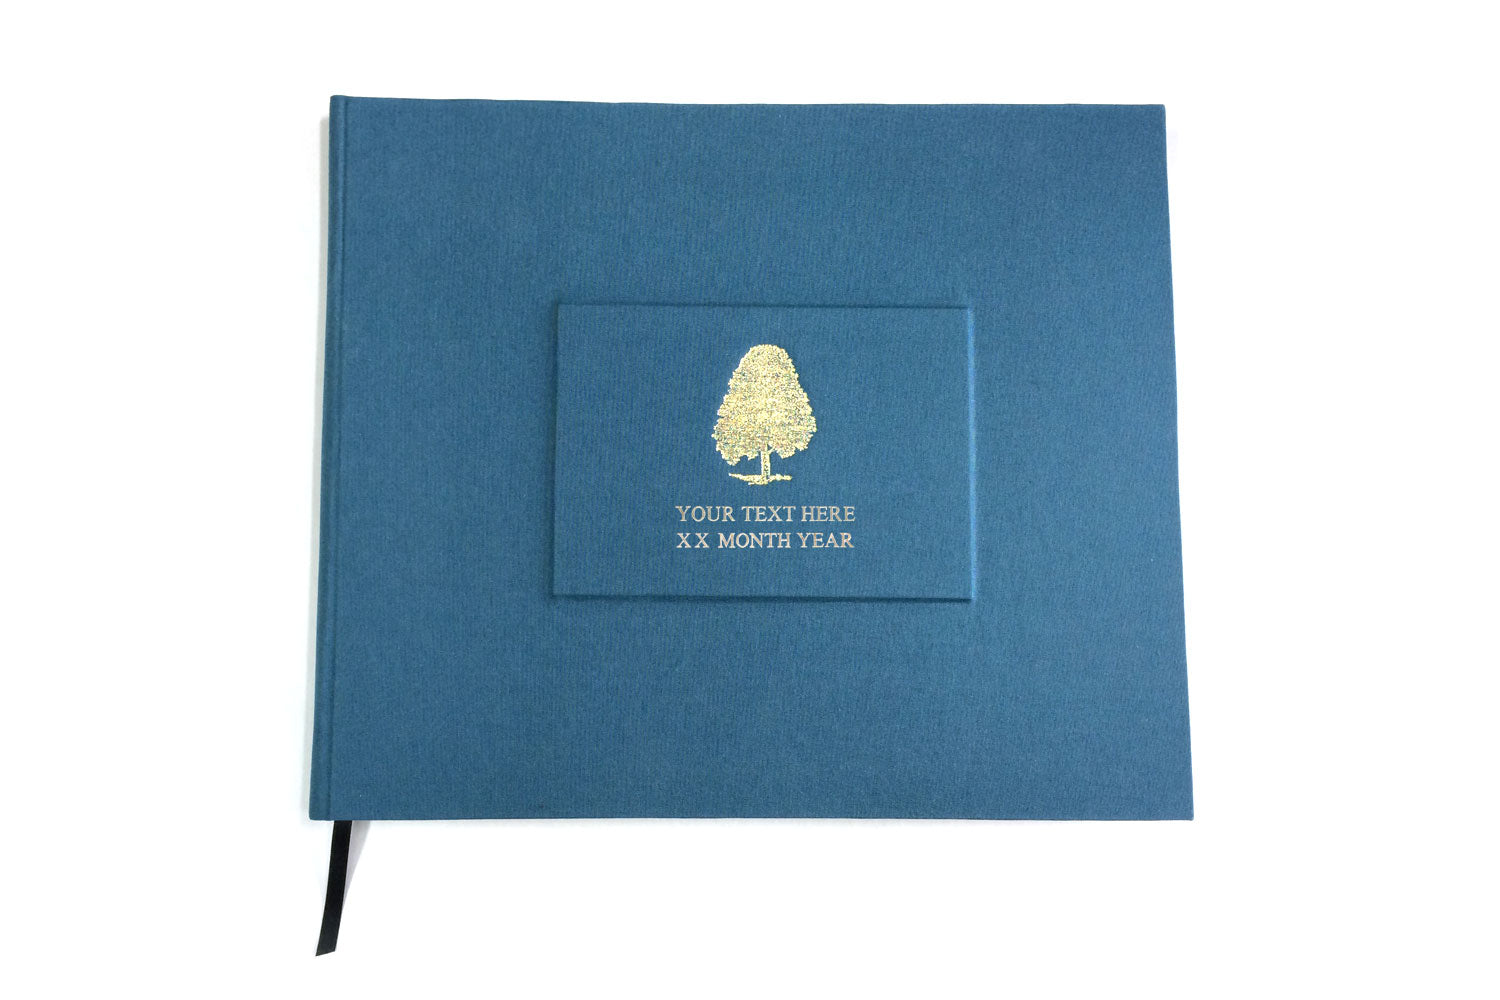 Blue personalised wedding guest book from Bookshell bindery, hand bound in blue book cloth with gold foil embossing, tree cover picture